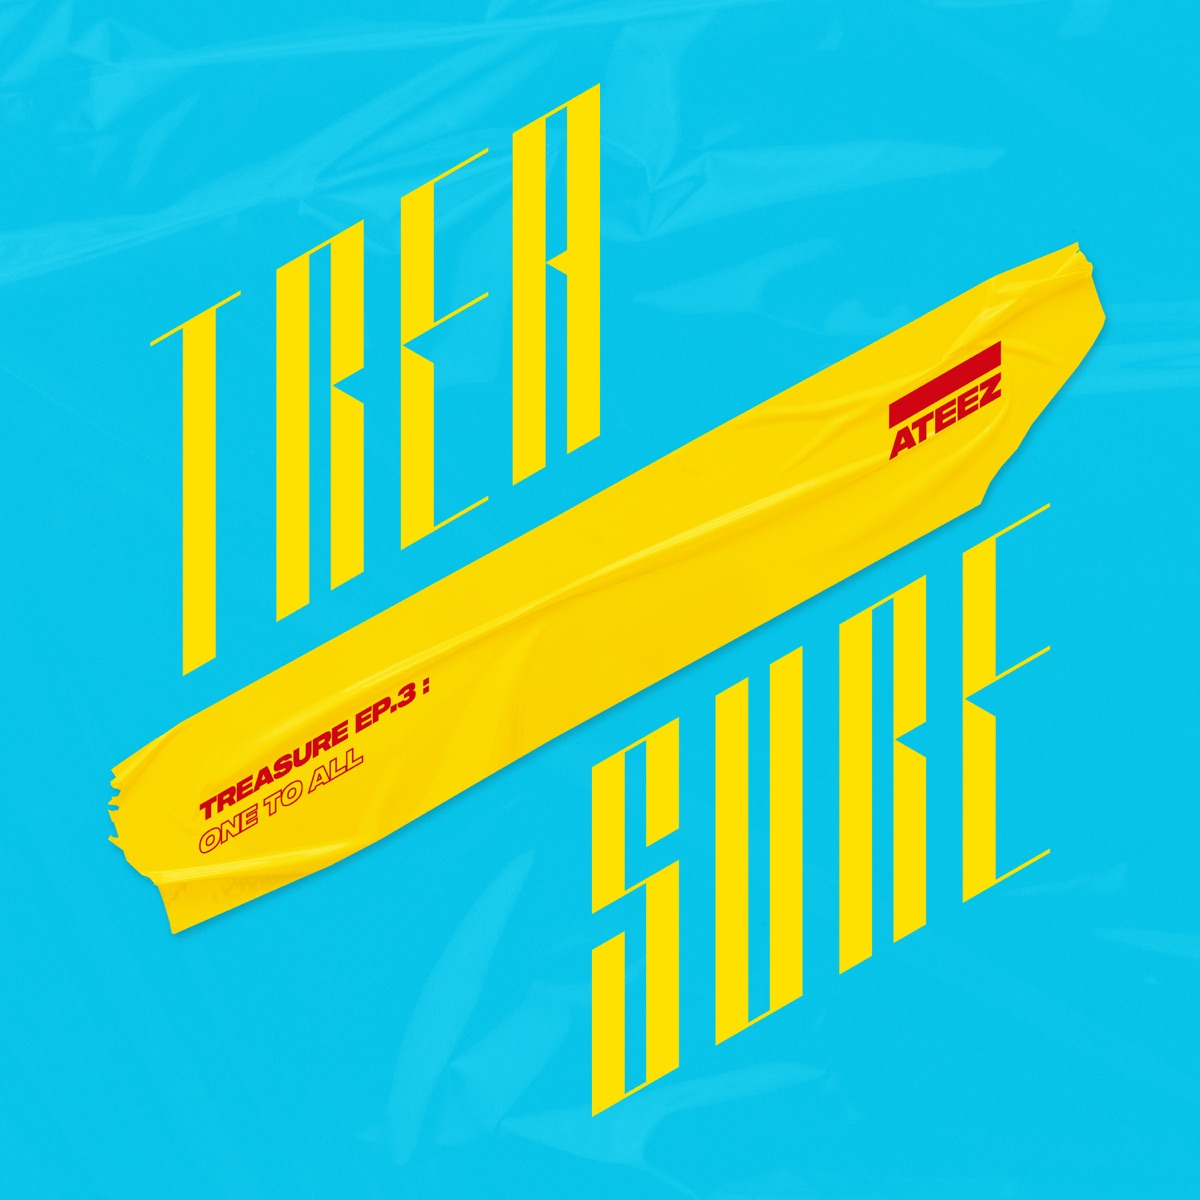 TREASURE EP3 One To All ATEEZ CD cover